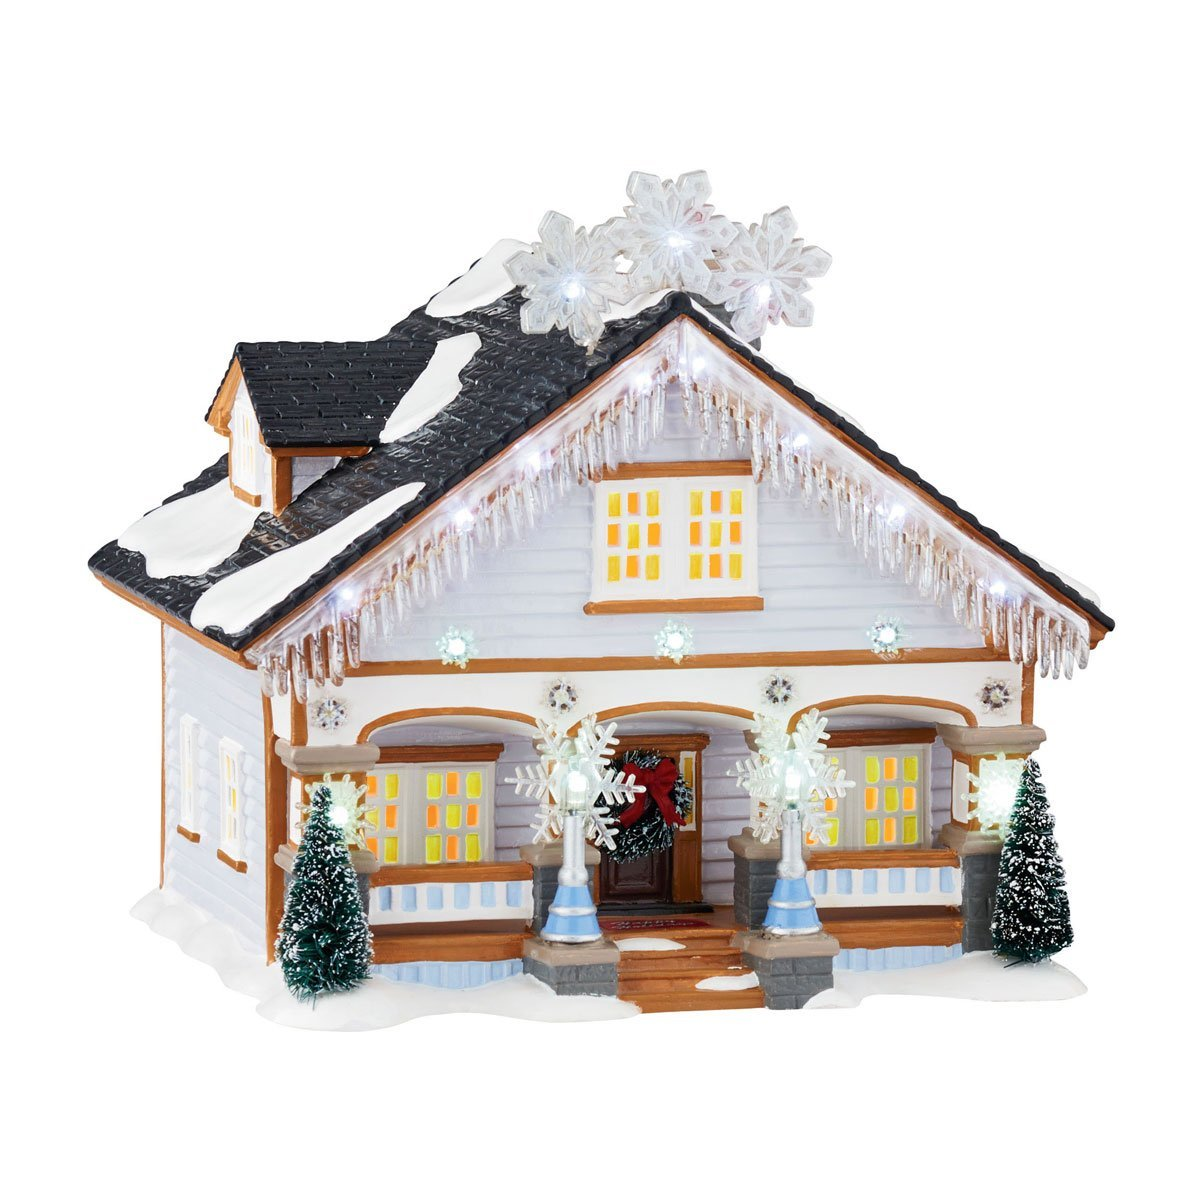 department 56 original snow village the snowflake house ebay. Black Bedroom Furniture Sets. Home Design Ideas